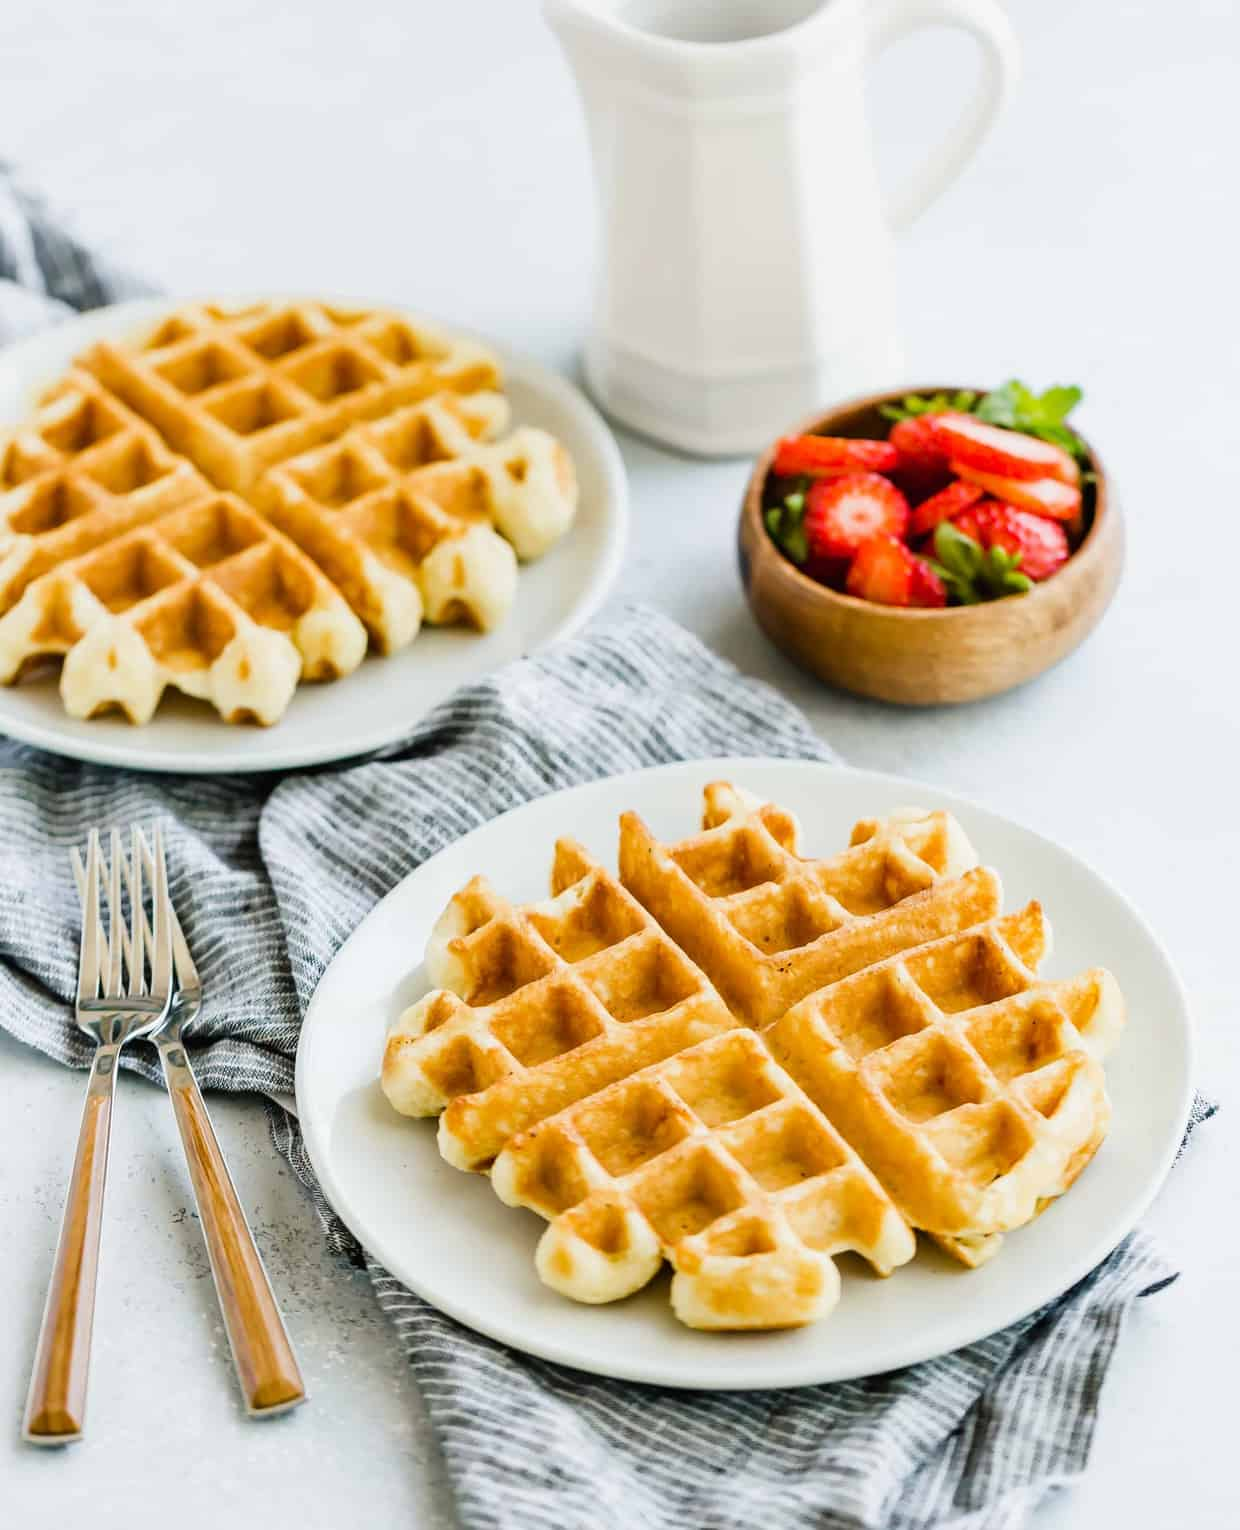 Buttermilk waffle on a plate with a bowl of strawberries in the background.